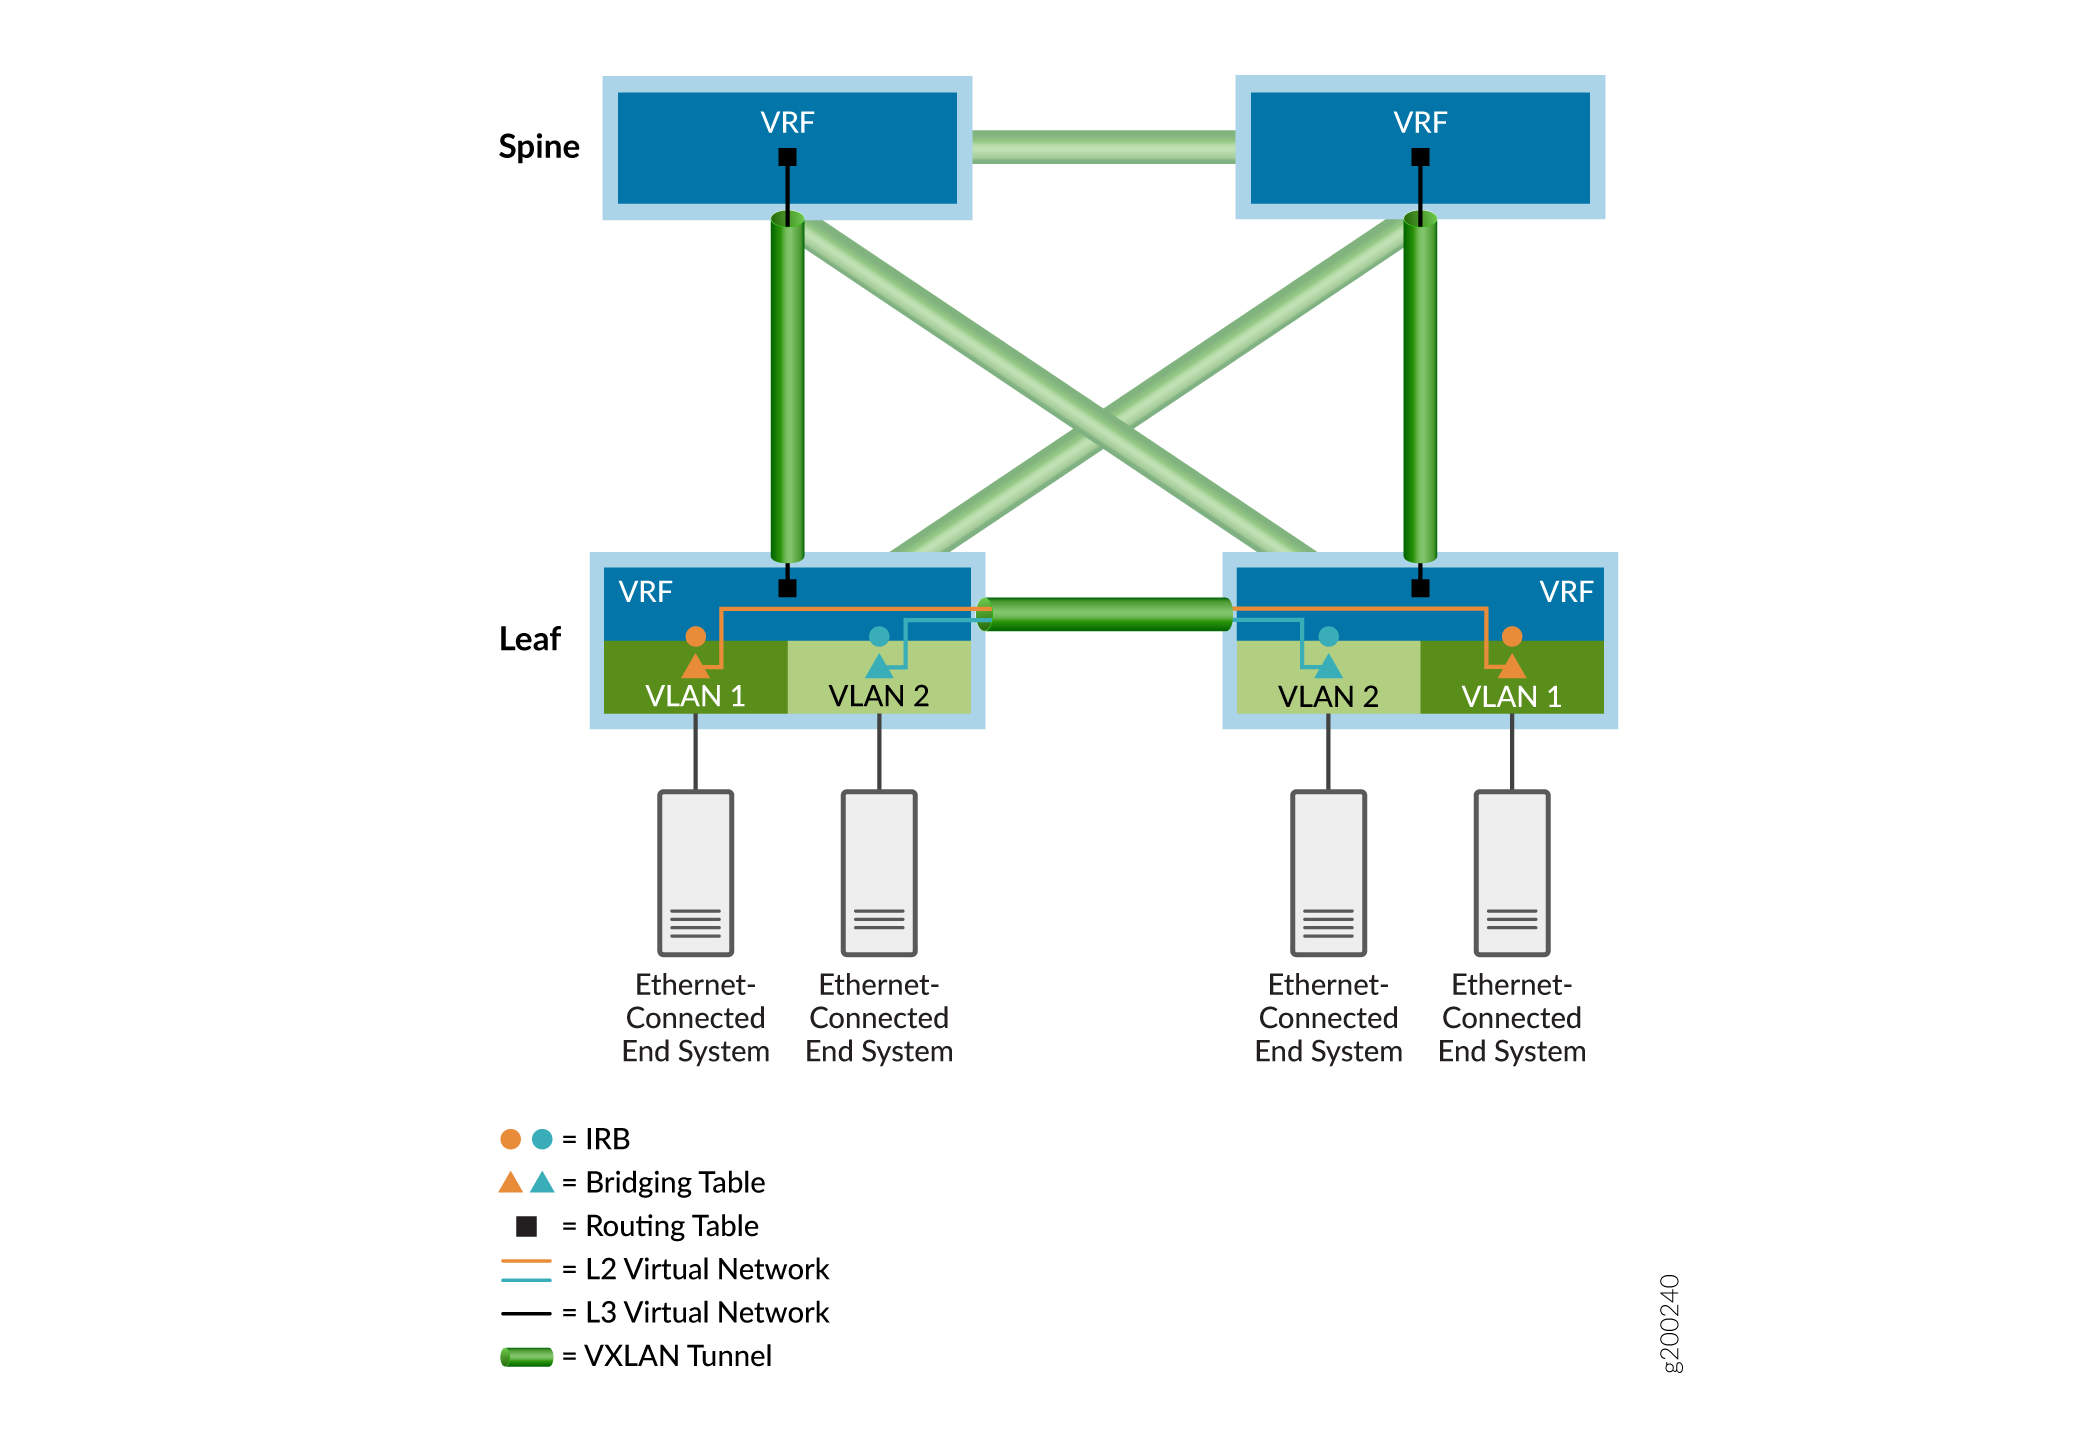 Data Center Fabric Blueprint Architecture Components - TechLibrary